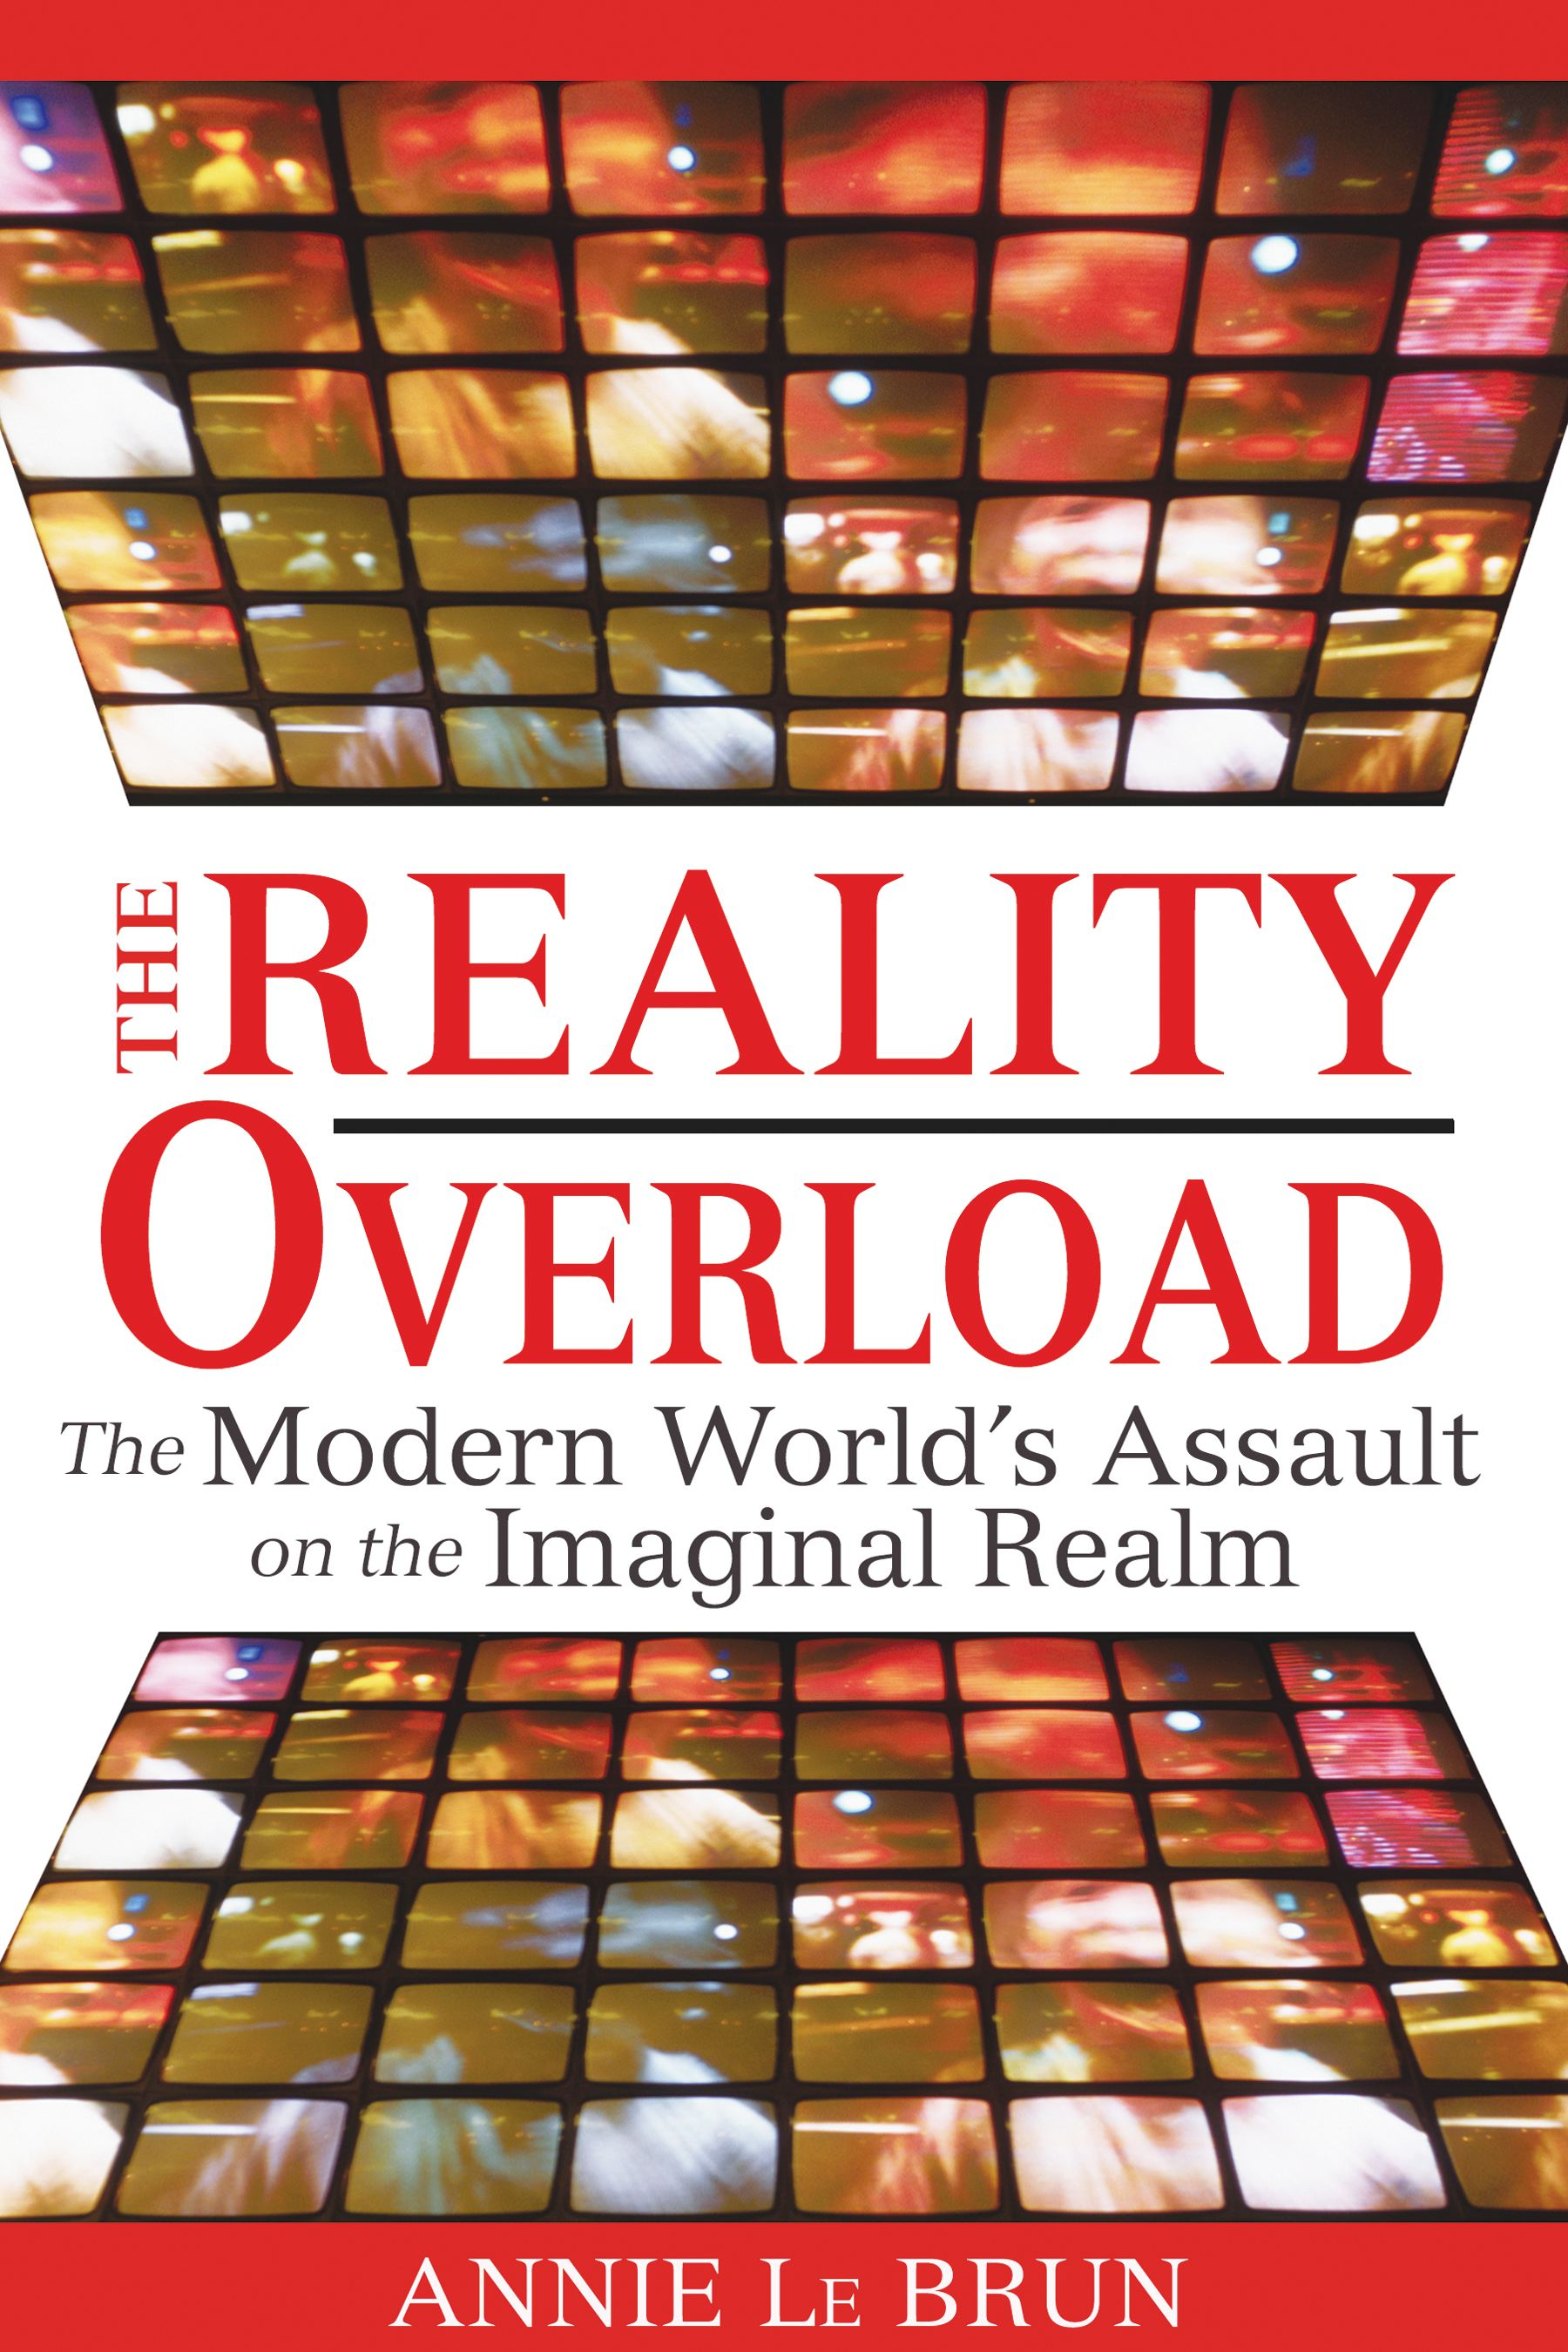 The-reality-overload-9781594772443_hr